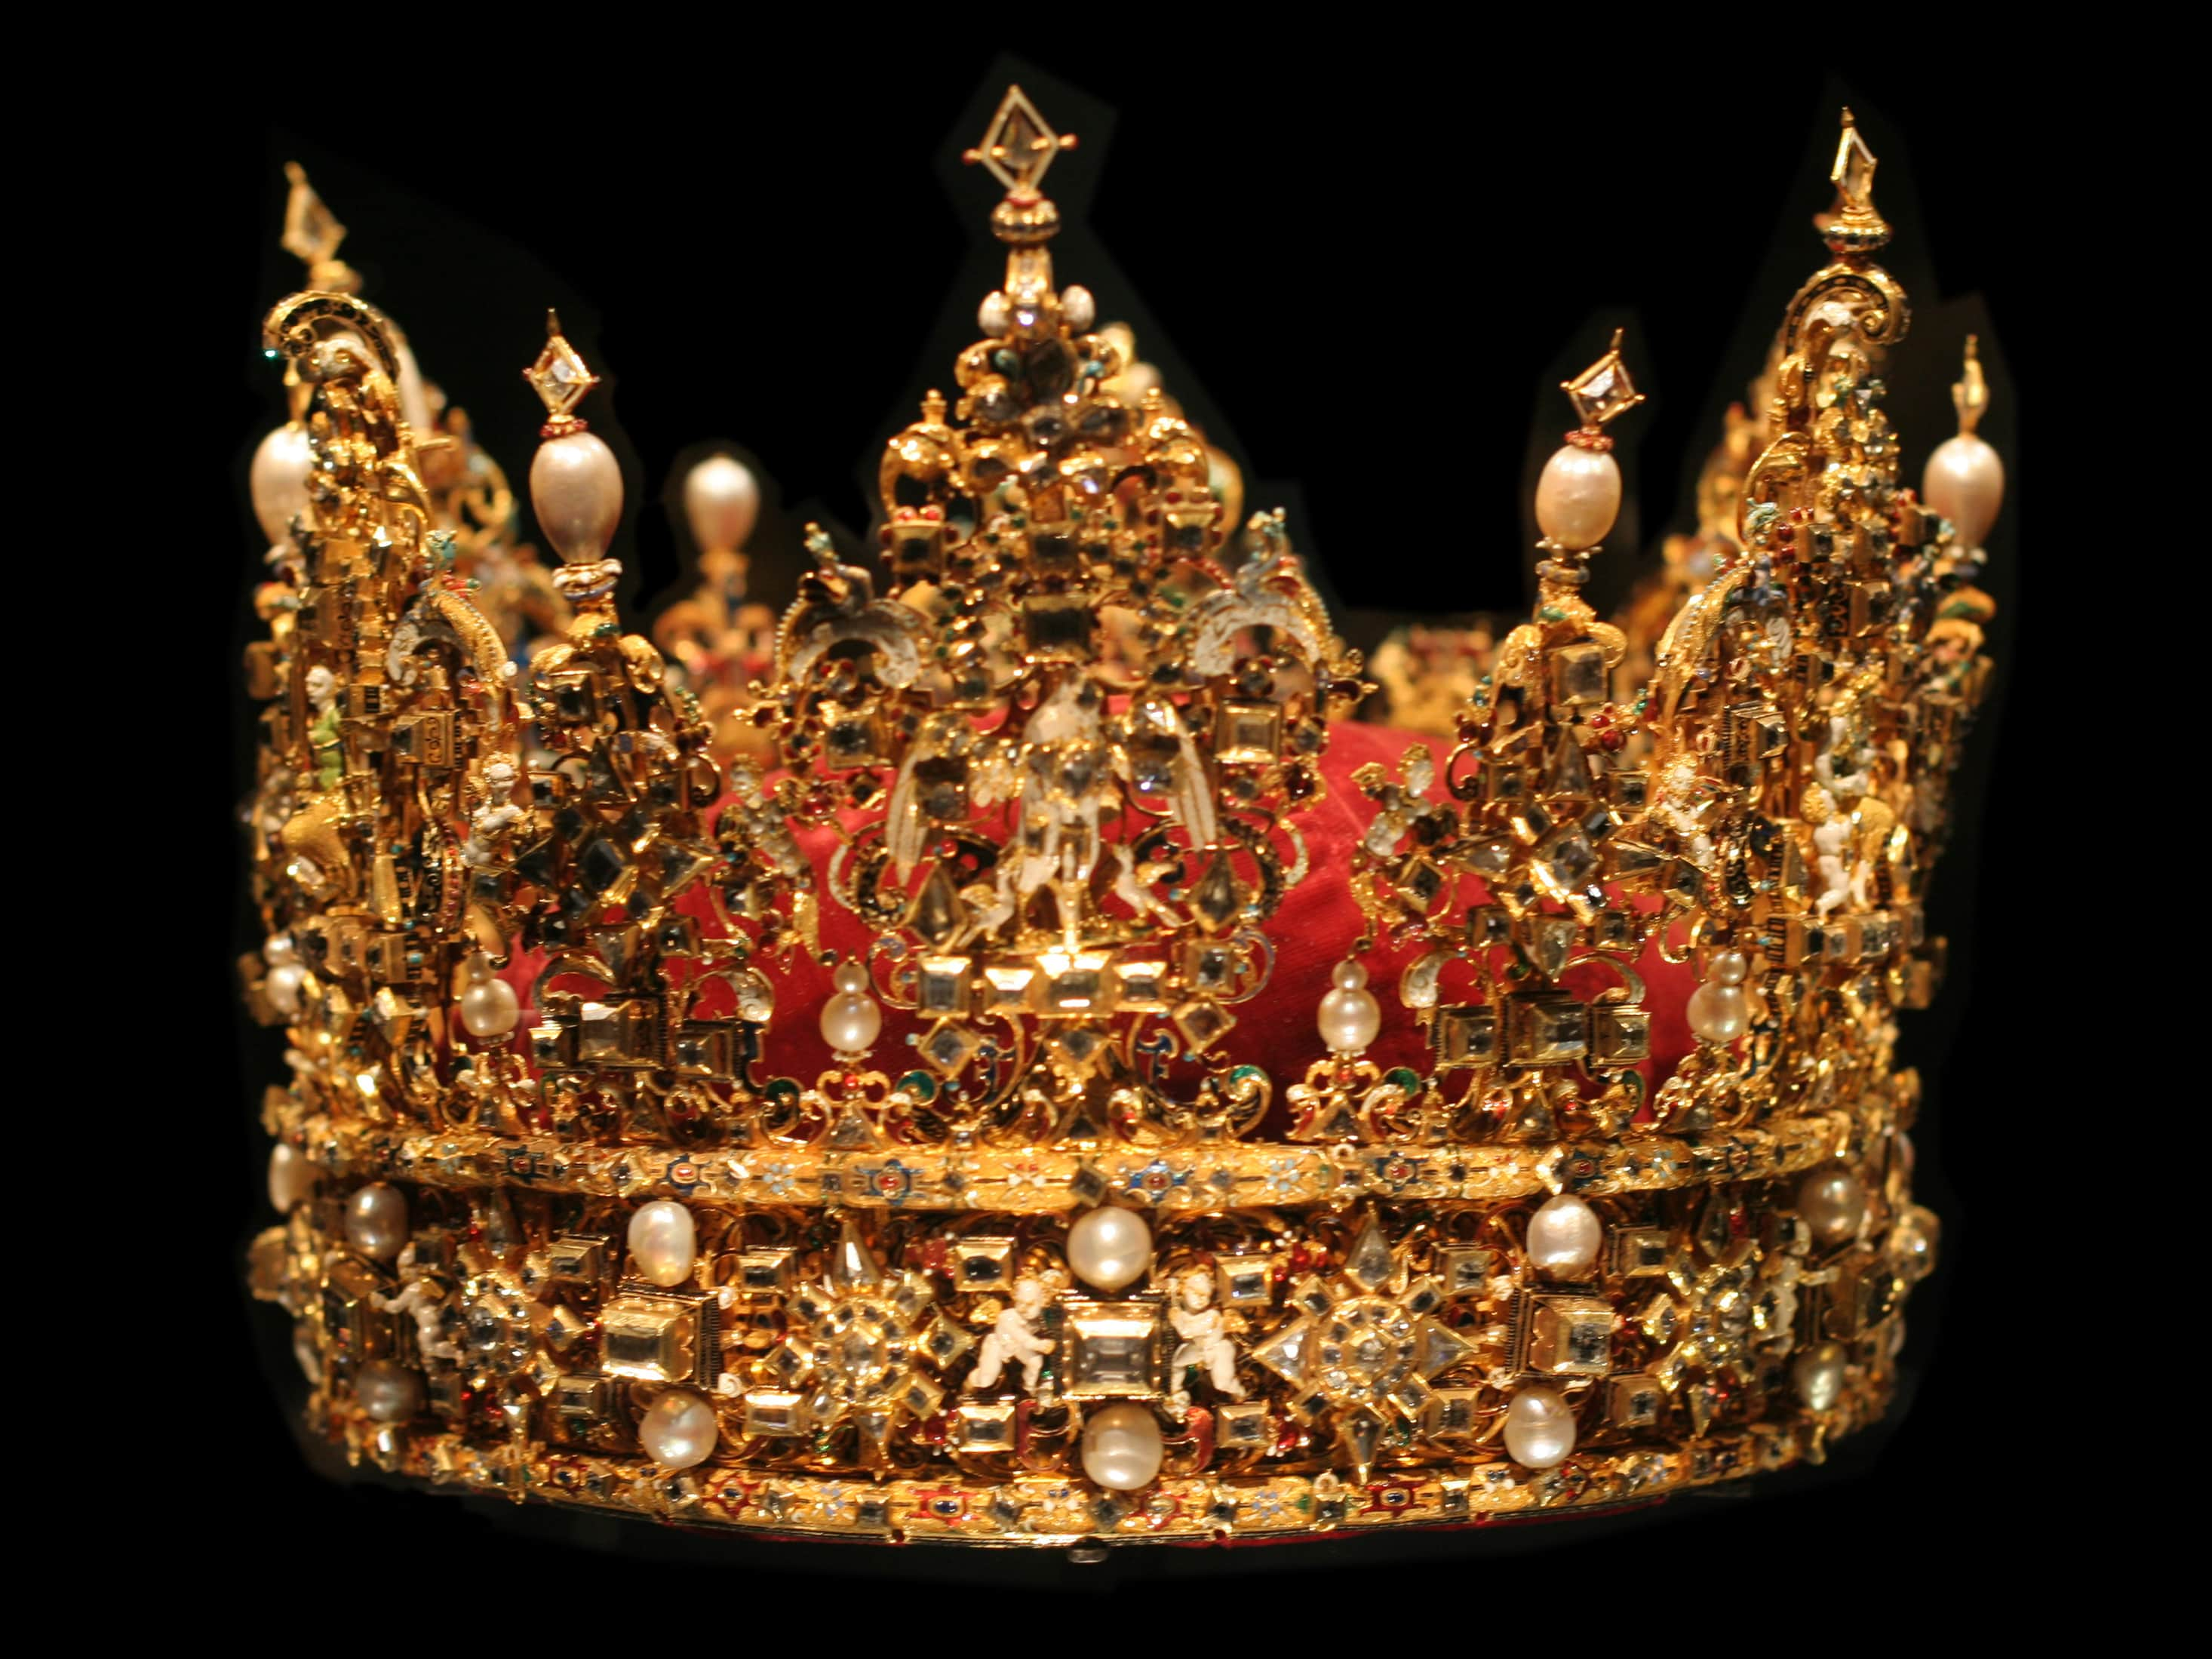 danish crown regalia